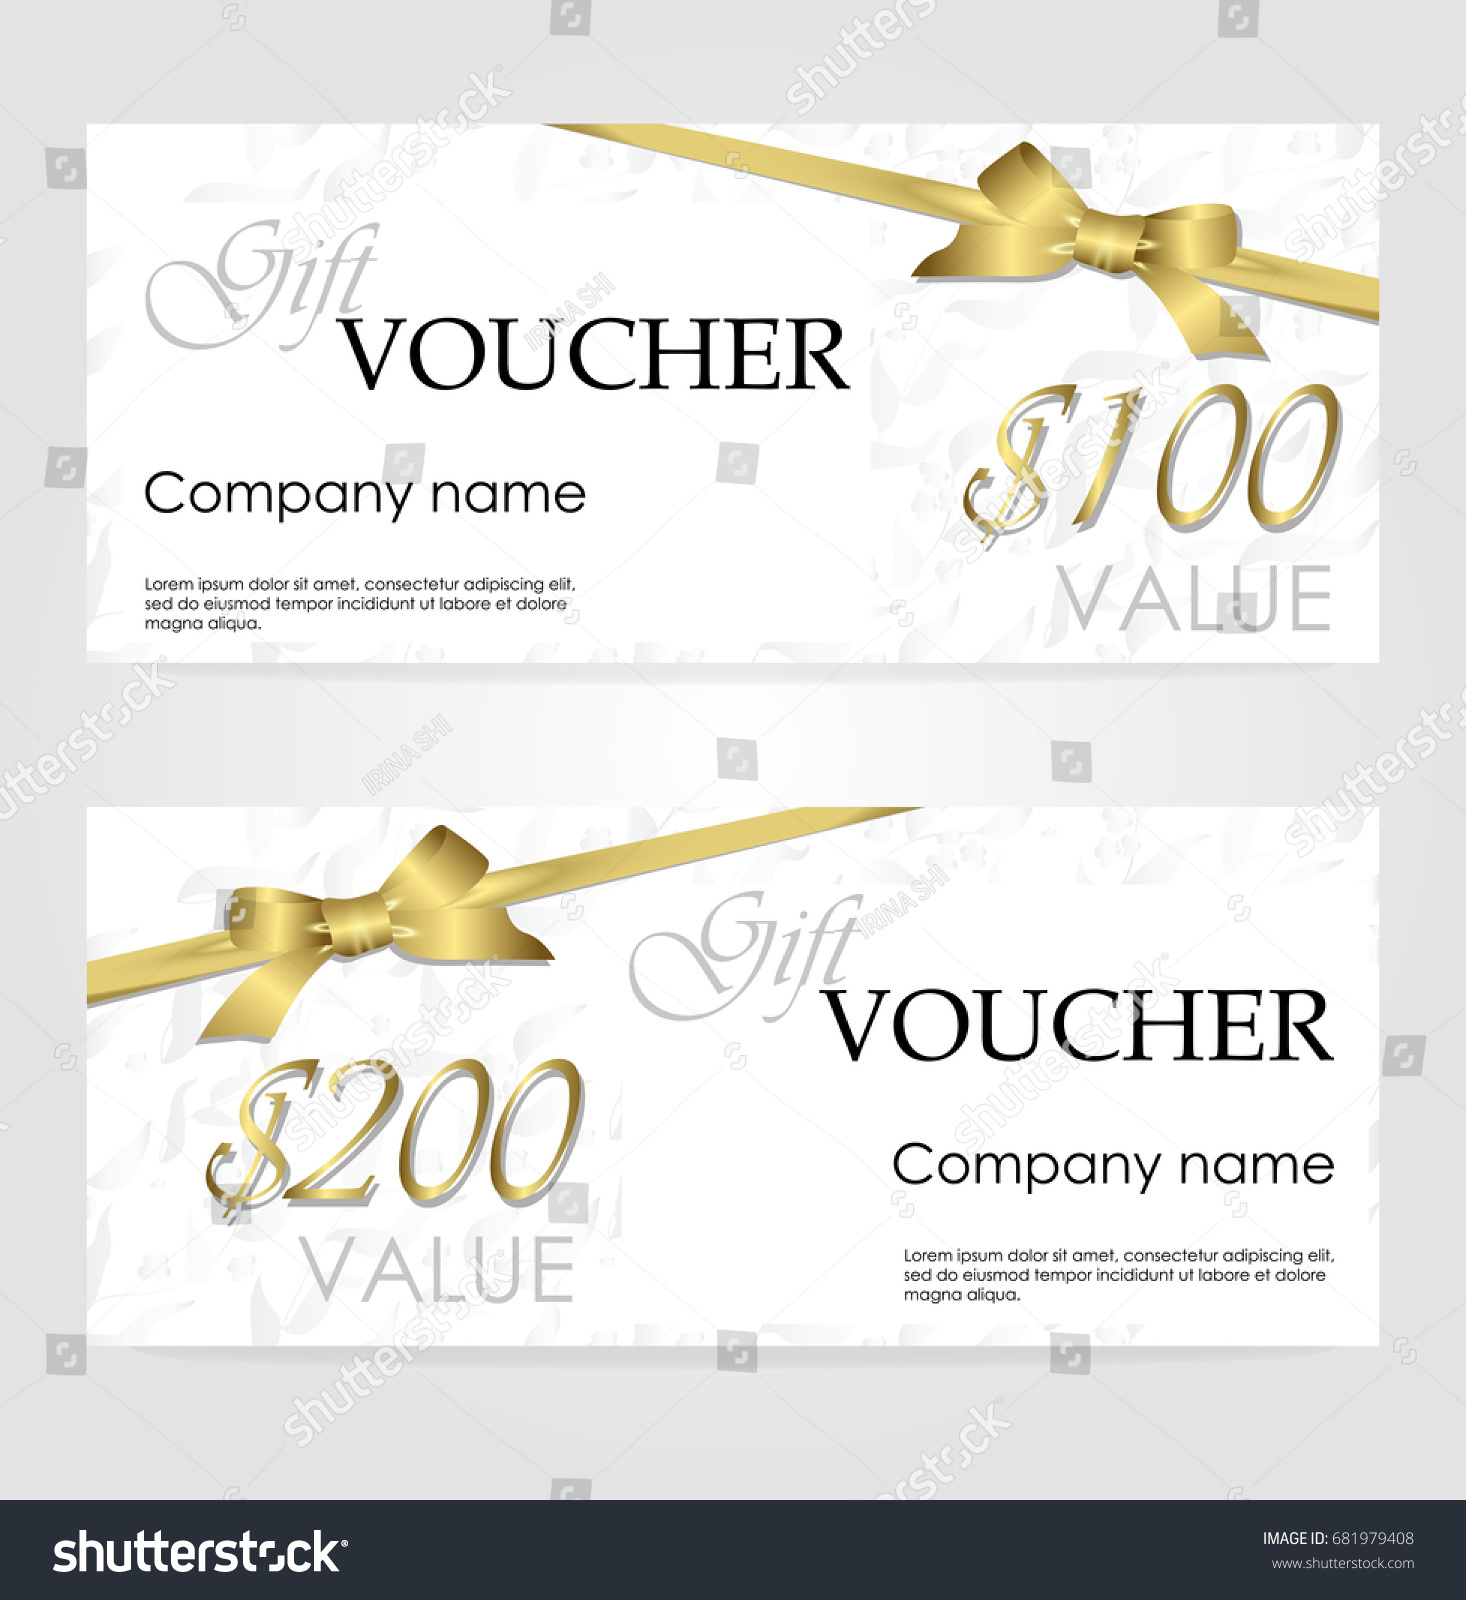 Stylish gift voucher golden ribbon silver stock vector 681979408 stylish gift voucher with golden ribbon and silver floral pattern vector template for gift card xflitez Choice Image